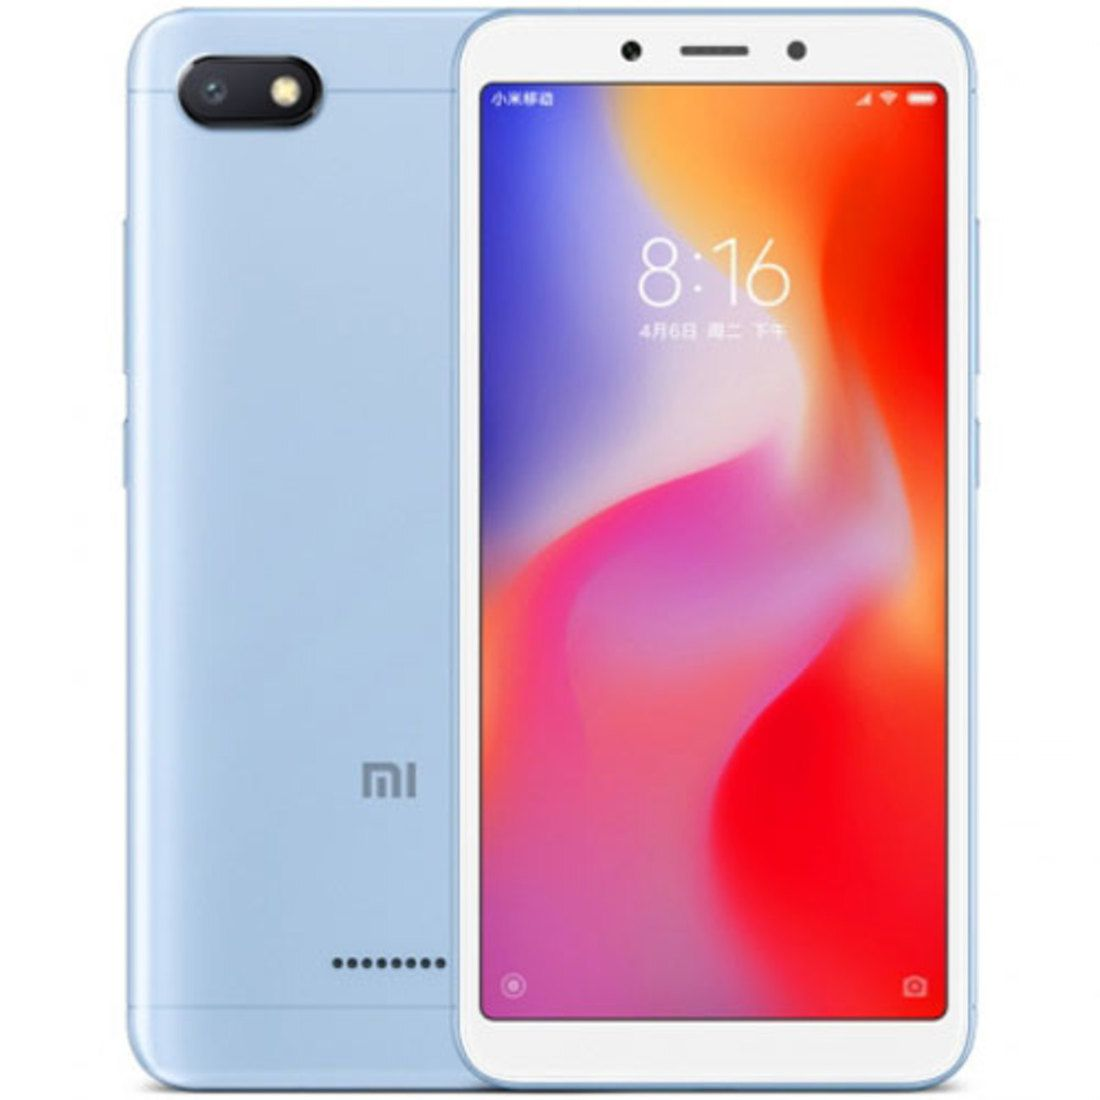 Smartphone Redmi 6A 2GB Ram Tela 5.45 16GB Camera 13MP - Azul